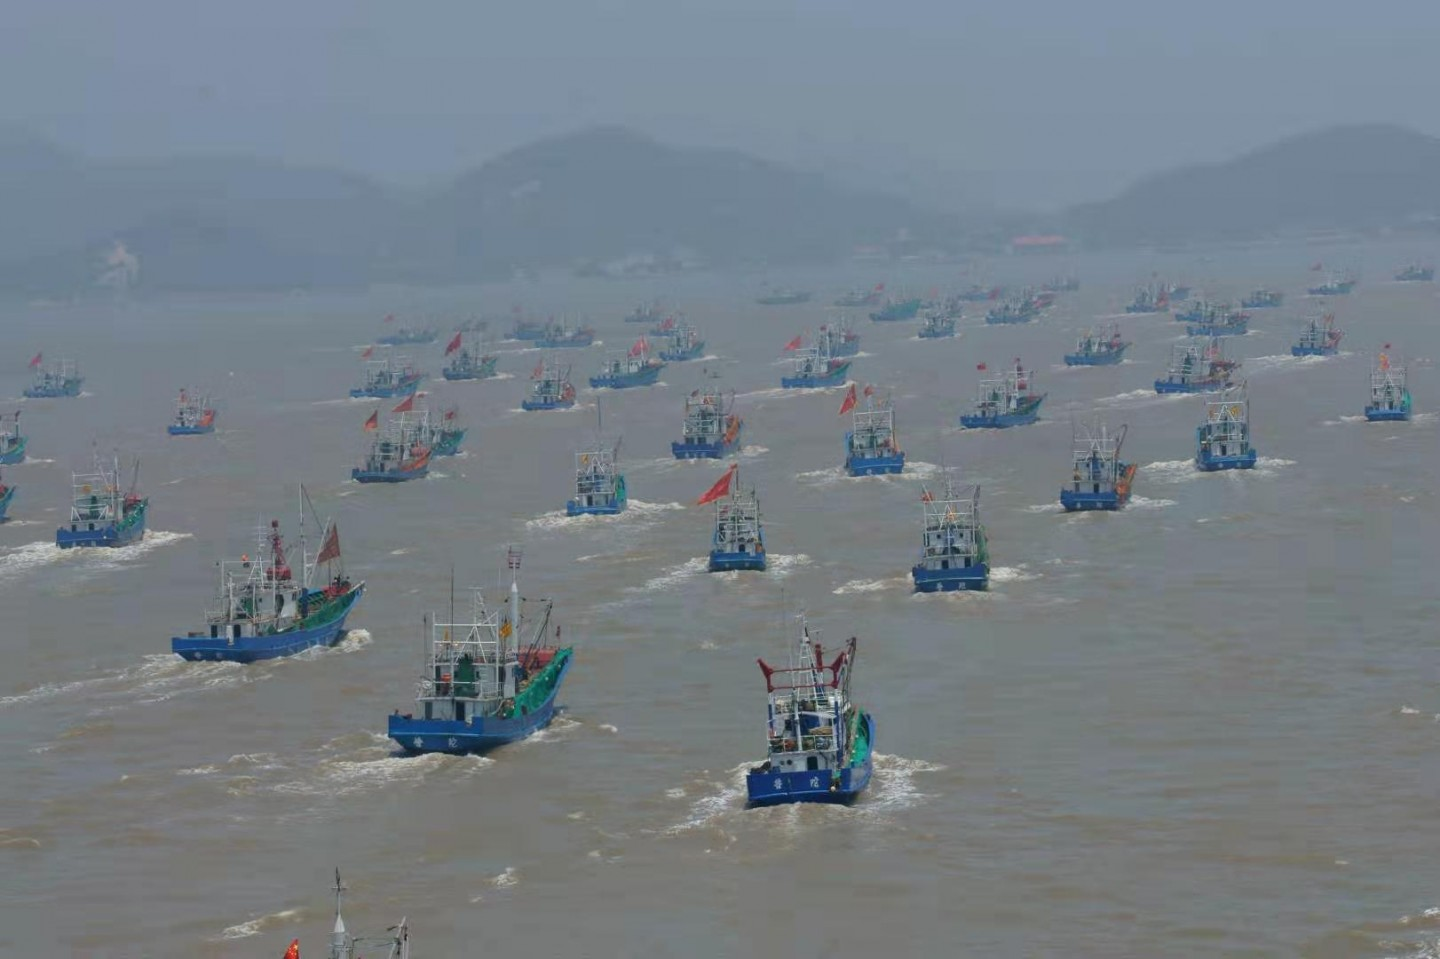 Shenjiamen fishing port. (Photo: Shu Jie, provided by Chen Nahui)